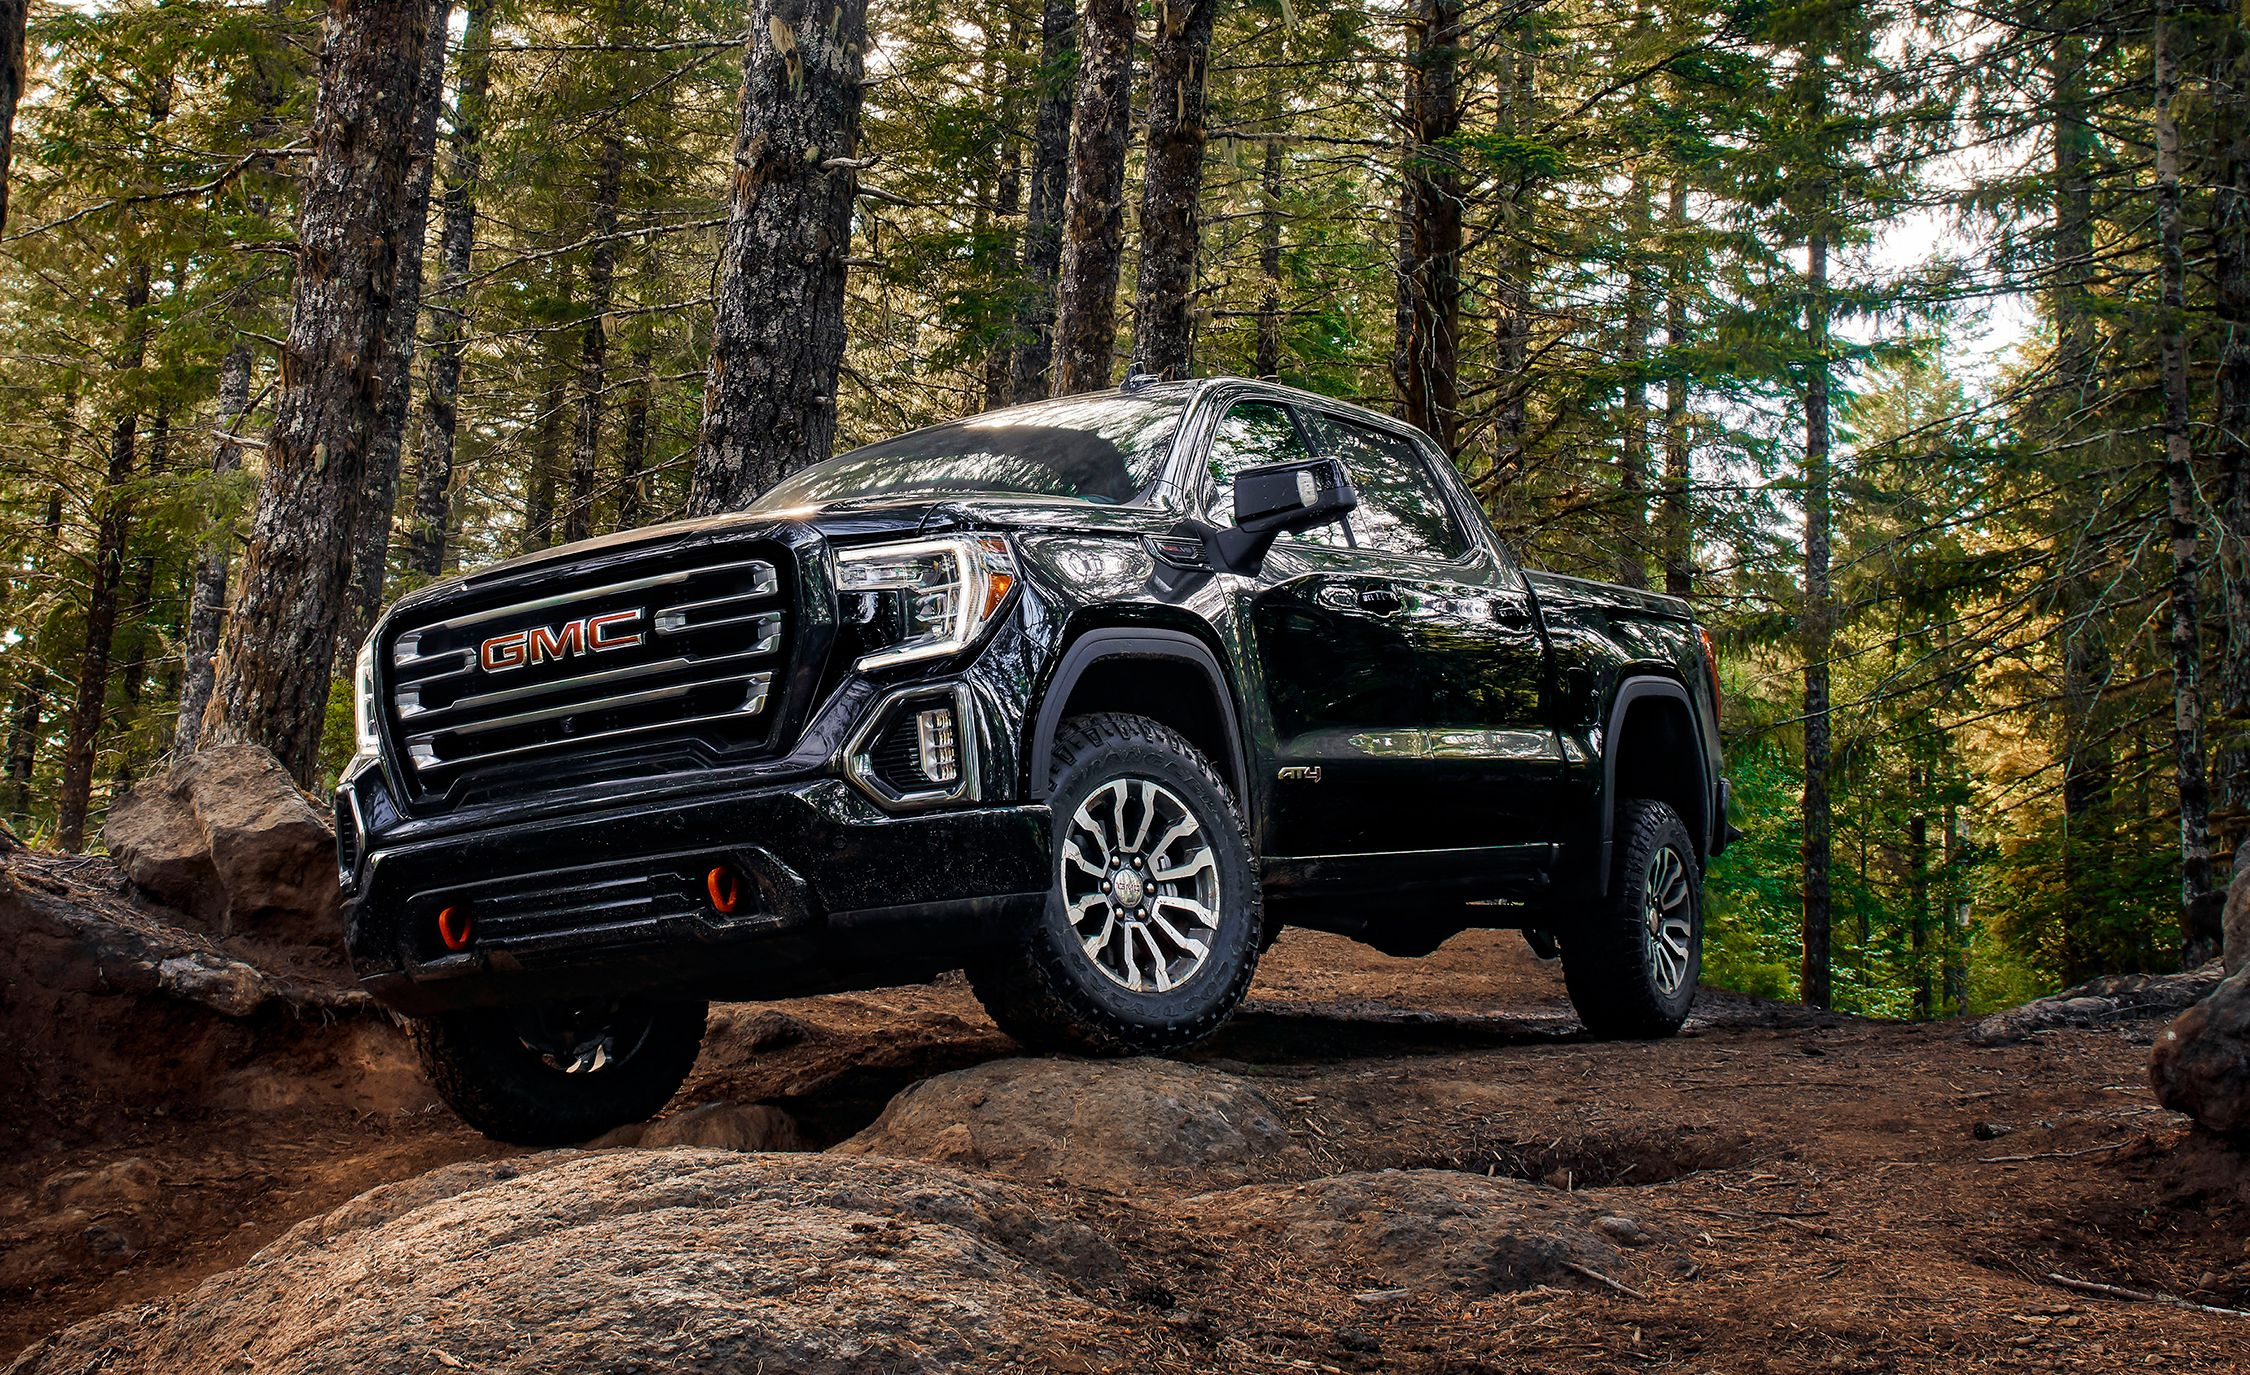 gmc sierra front differential problems